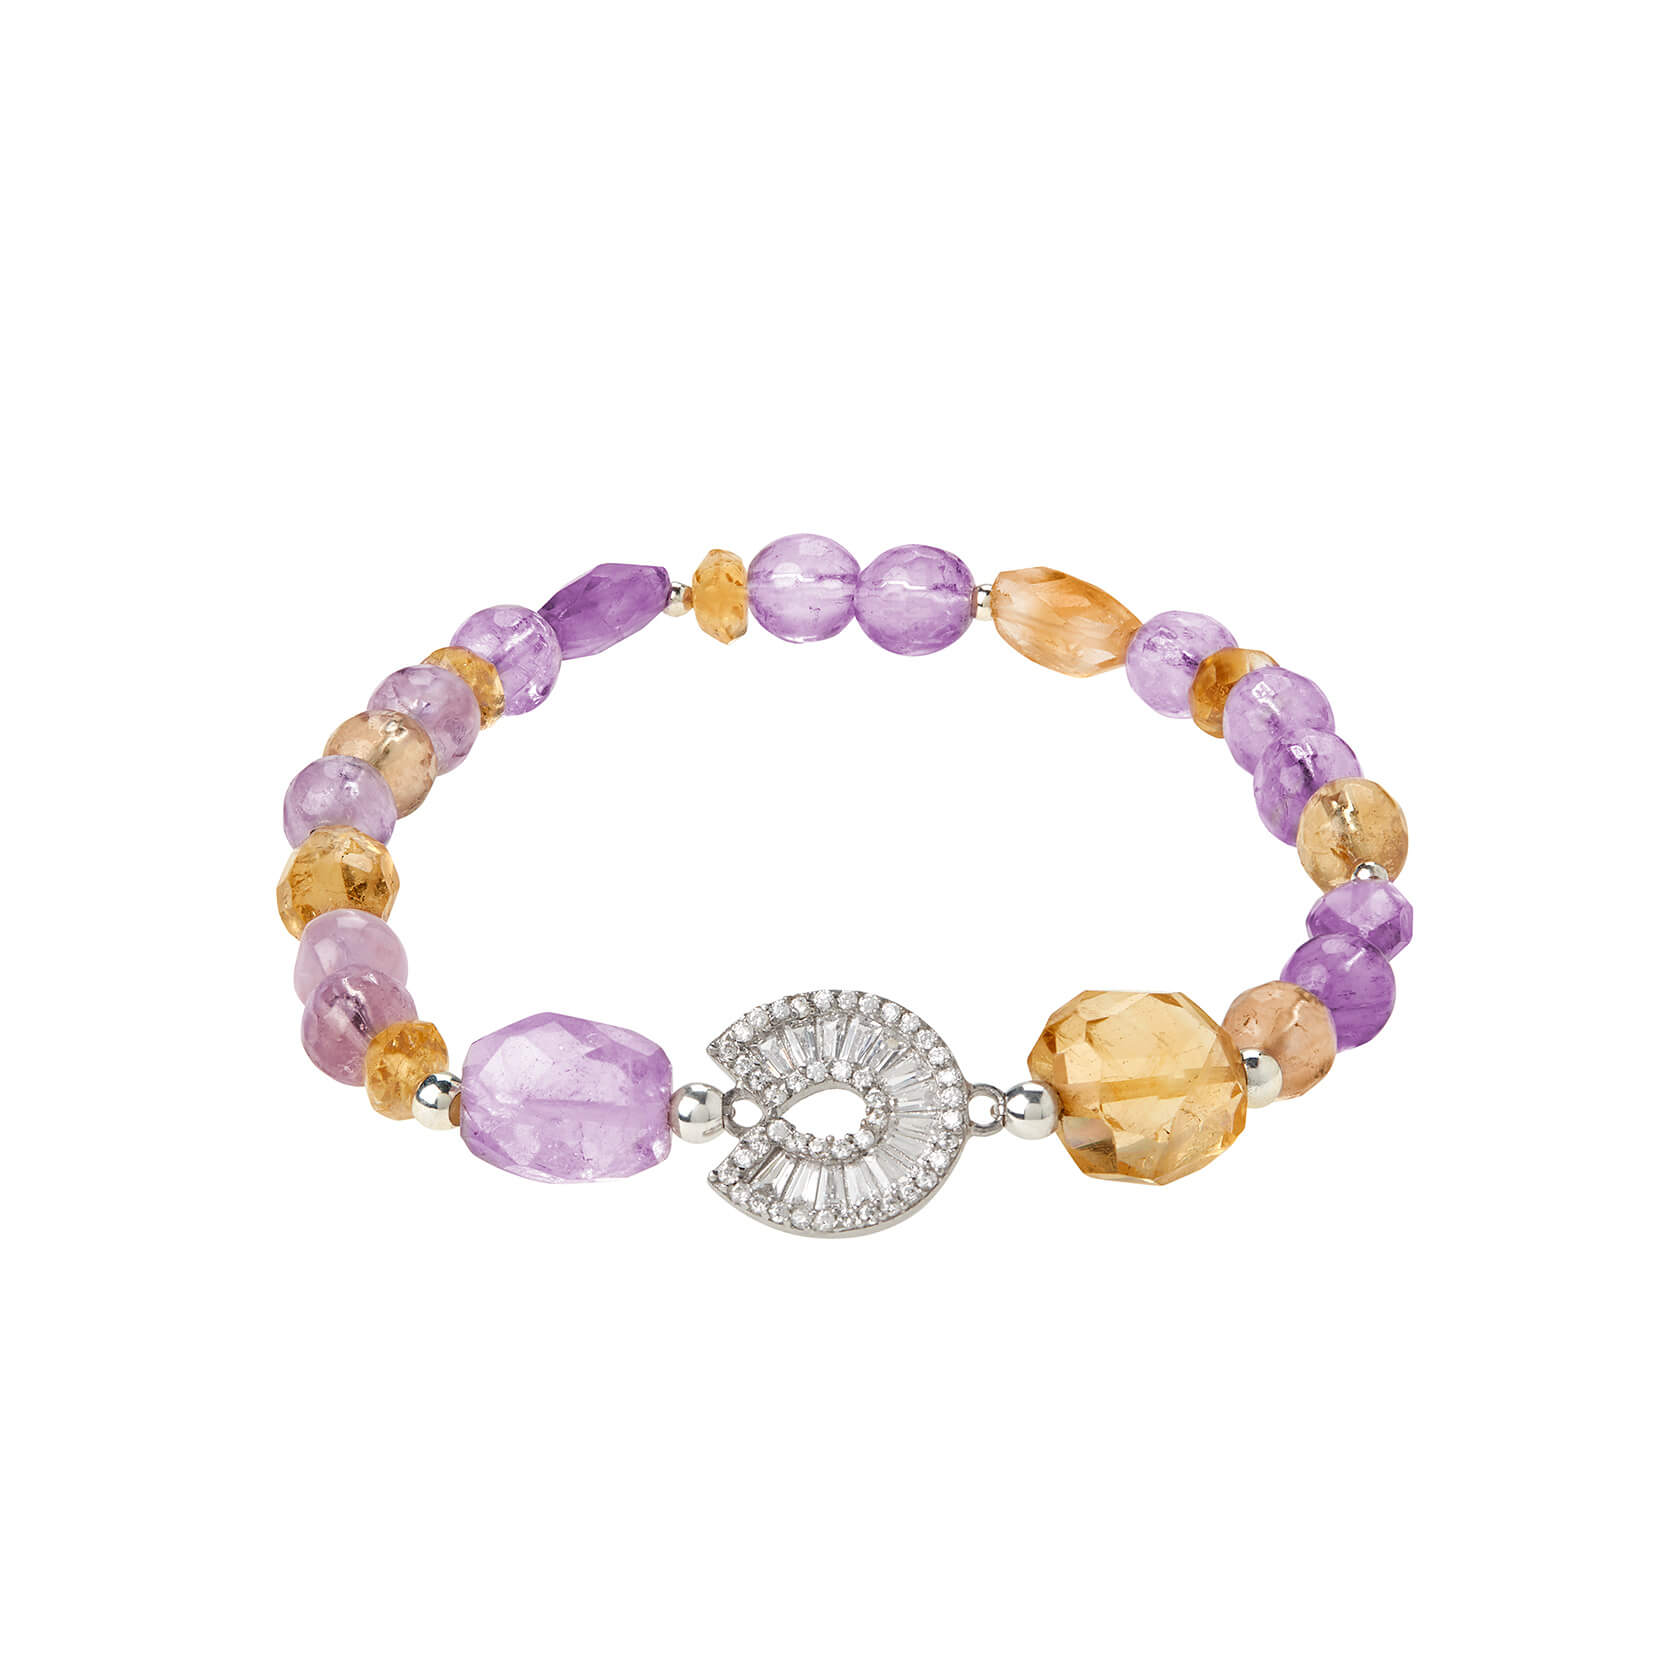 Amethyst, citrine and ametrine bracelet